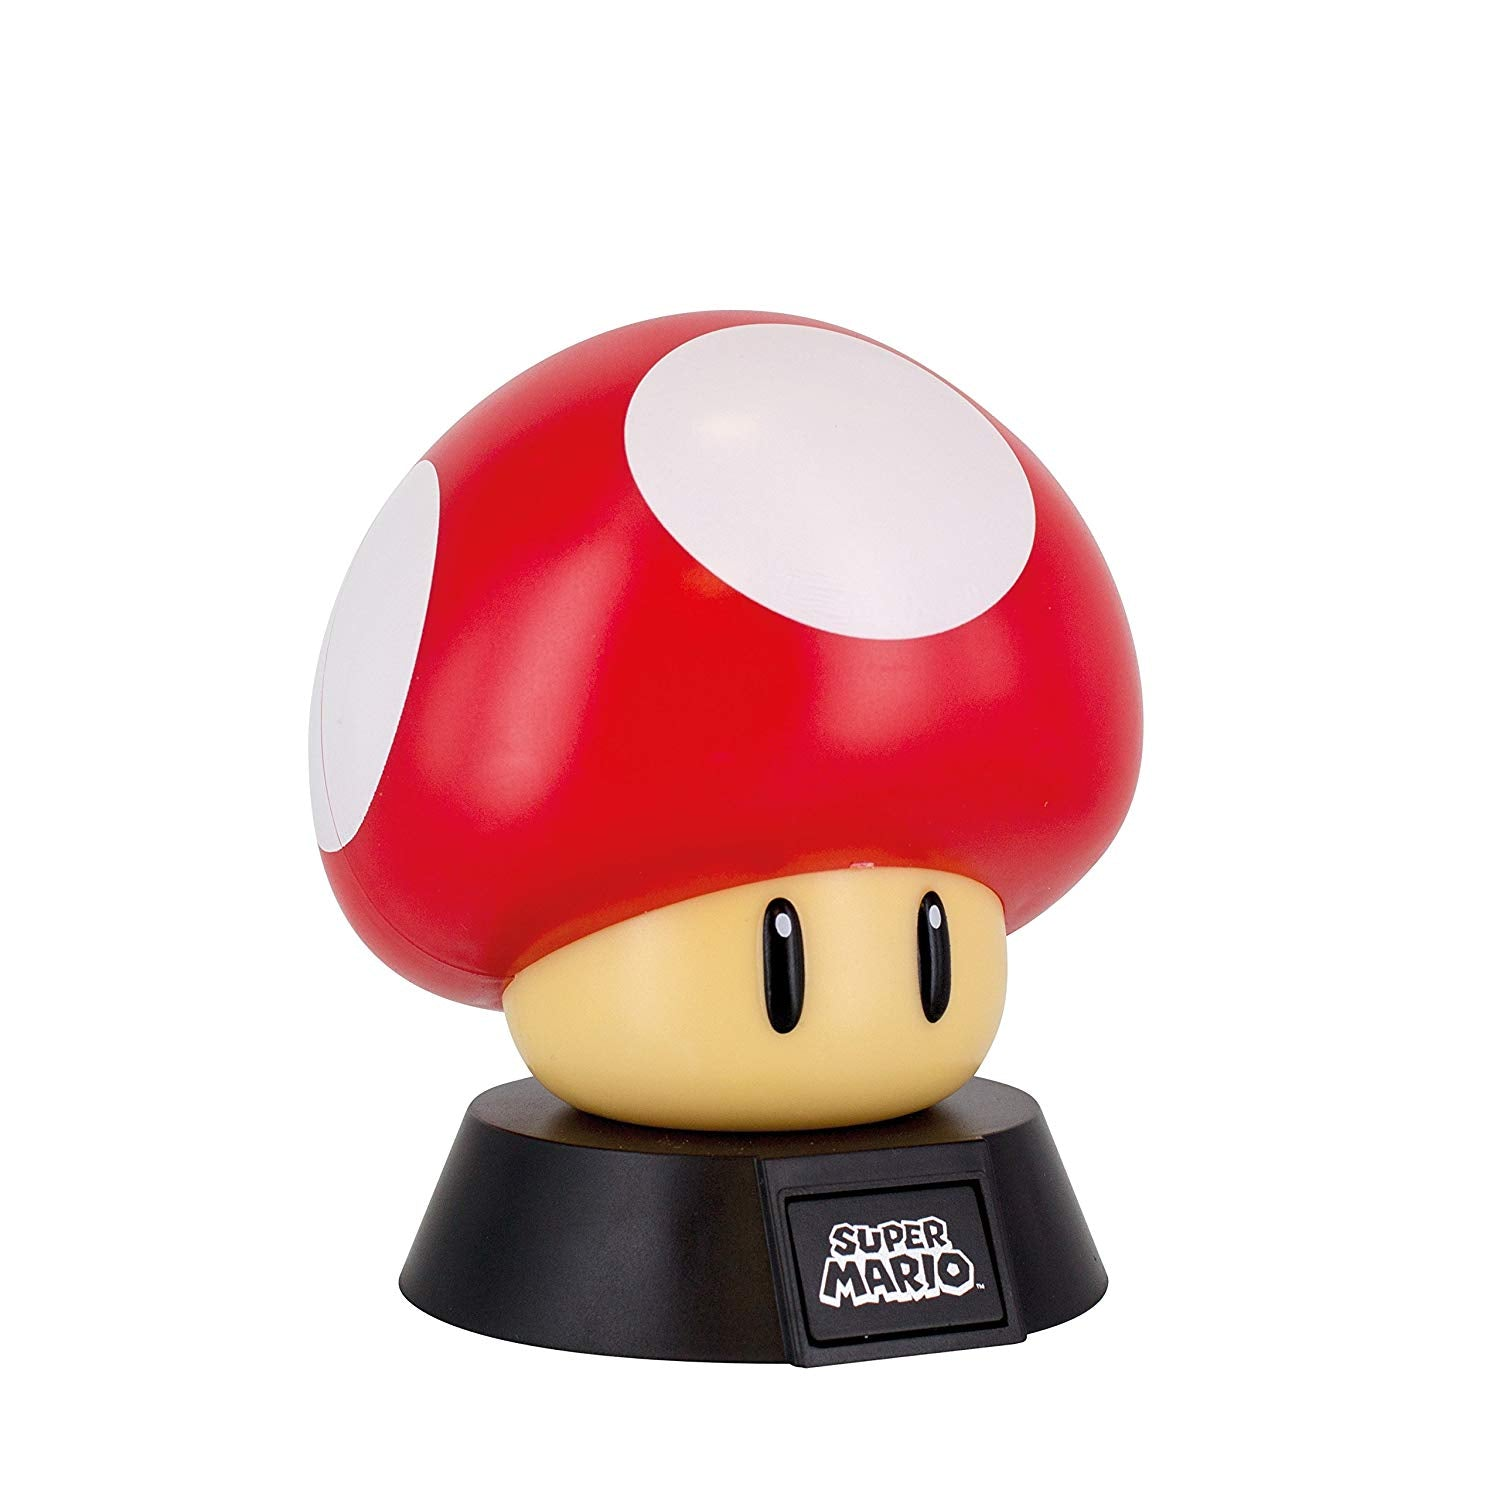 Super Mario Super Mushroom 3D Light